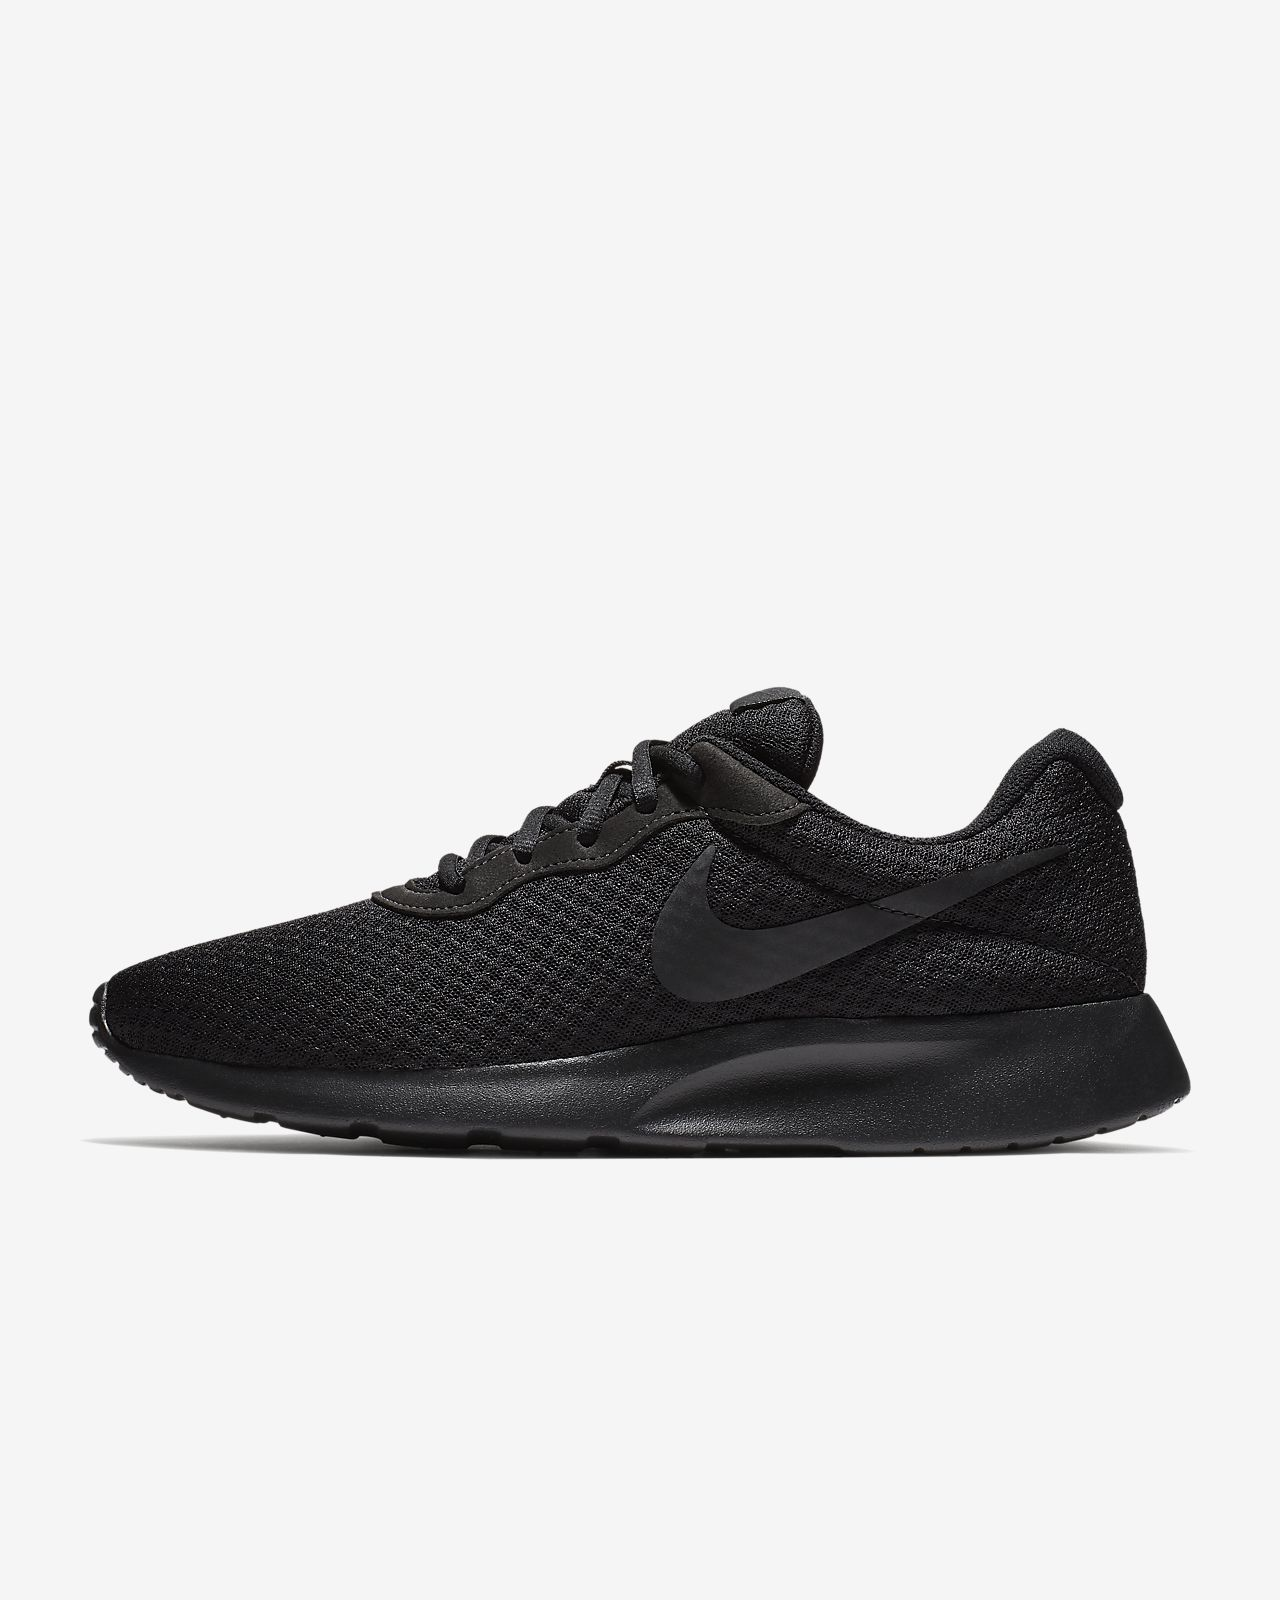 quality design 3c694 09076 ... Chaussure Nike Tanjun pour Homme